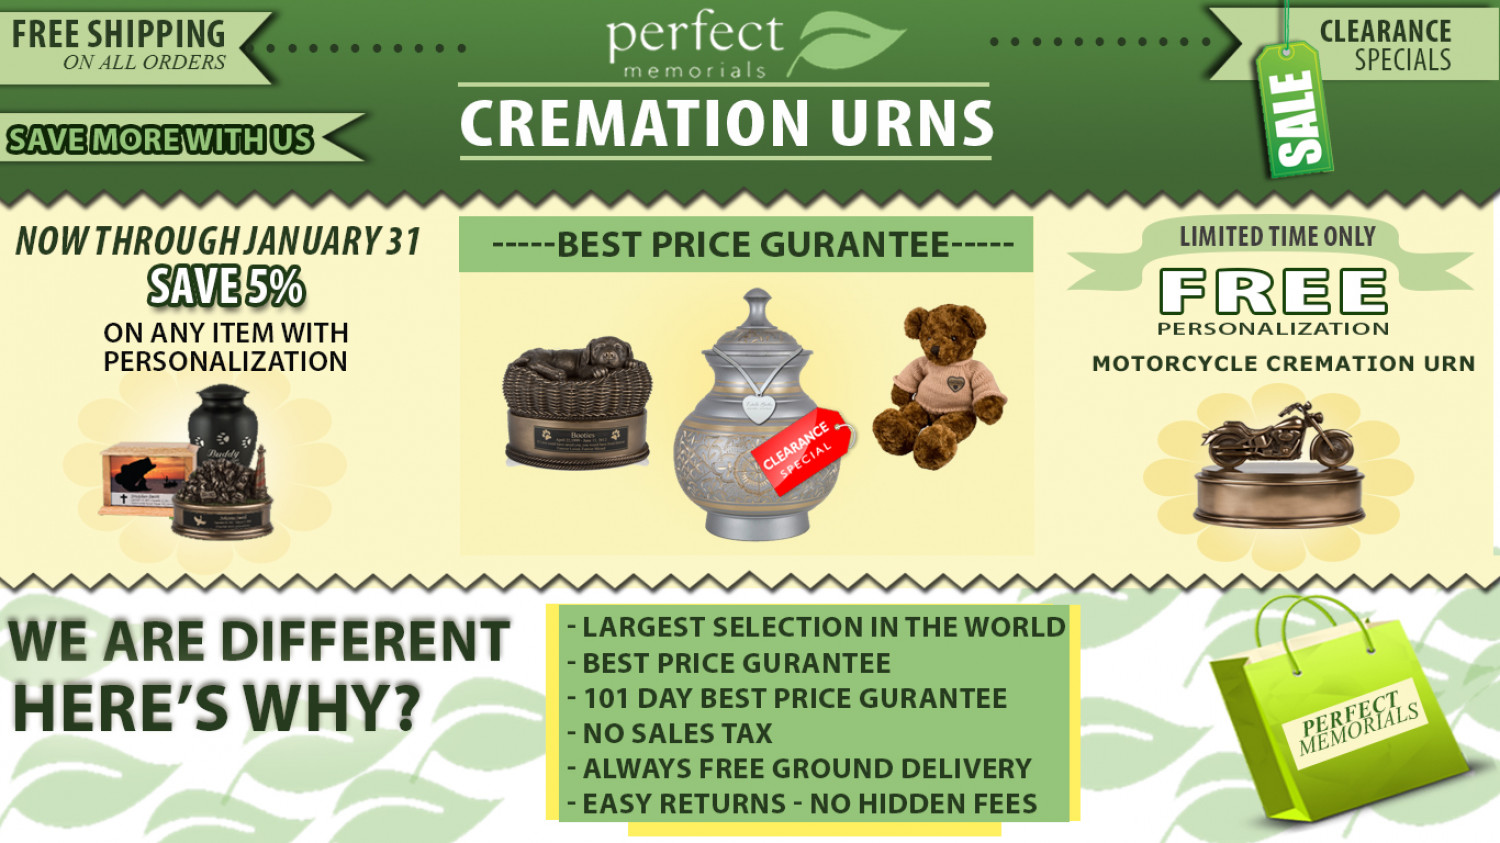 Perfect Memorials - Cremation Urns Infographic